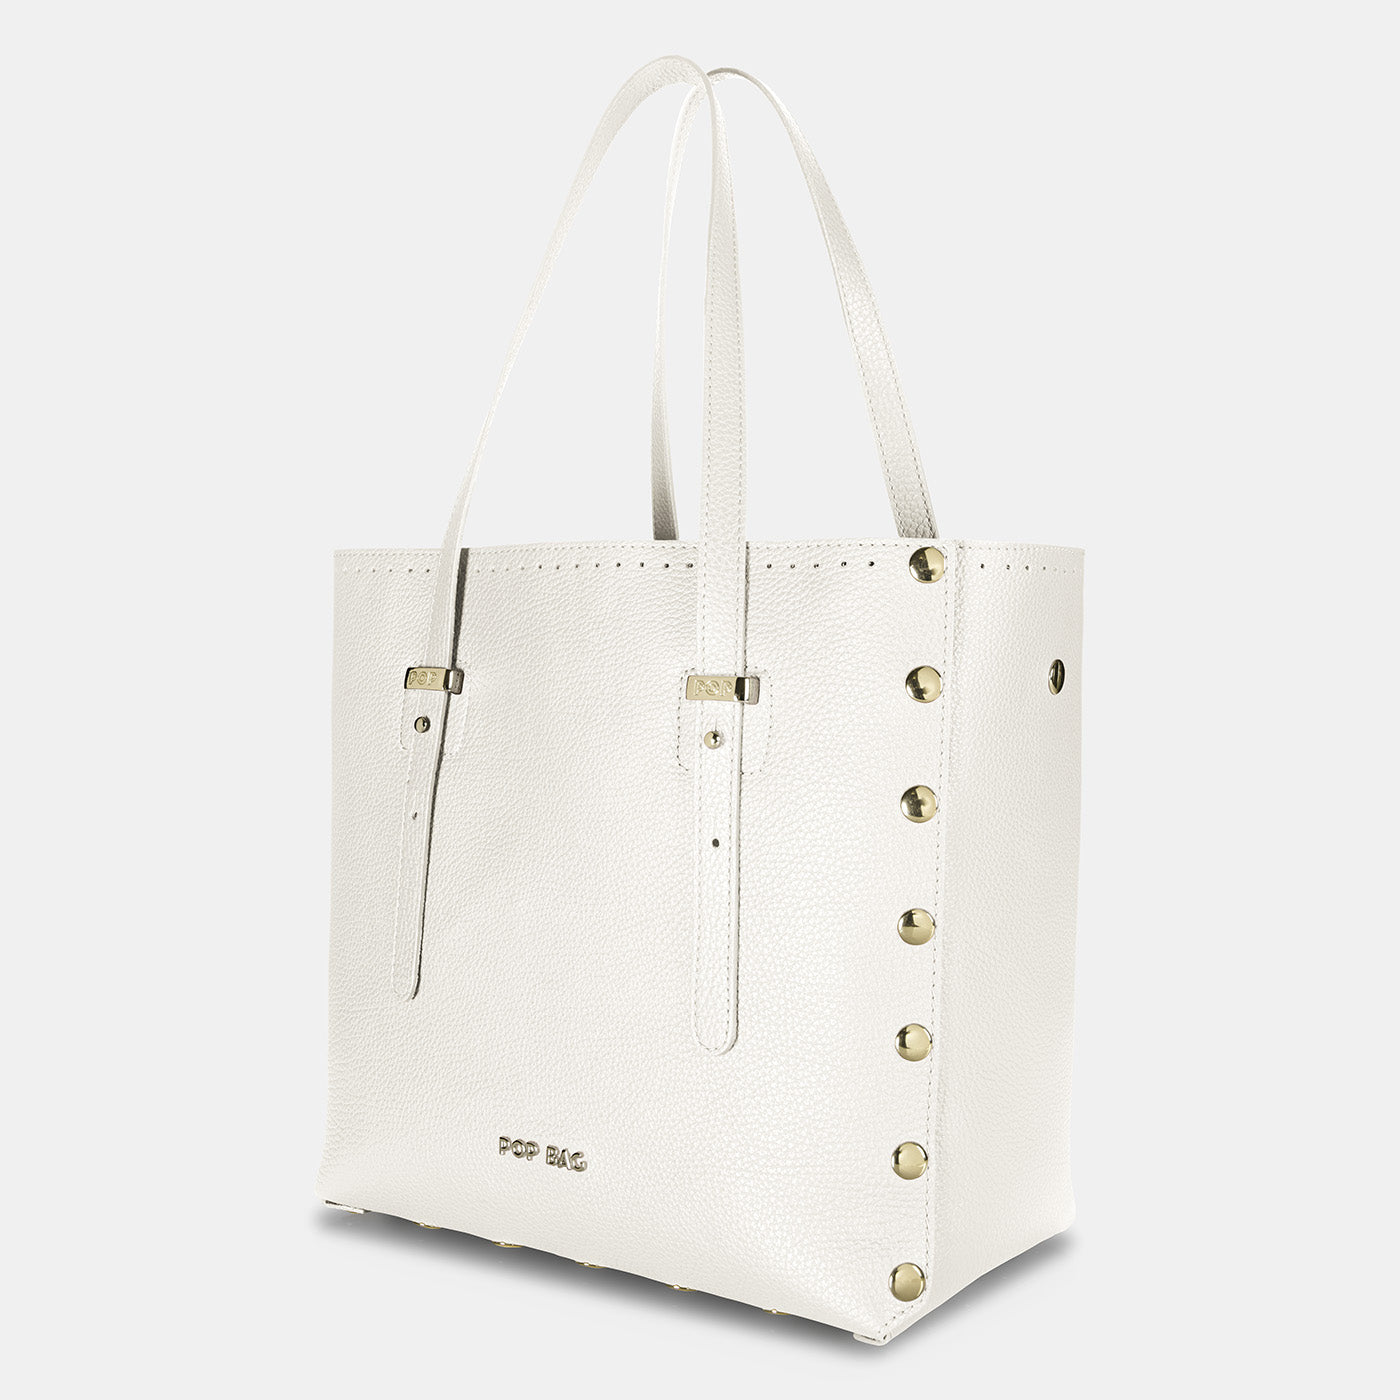 Pop Dolly Bag - White - Side View